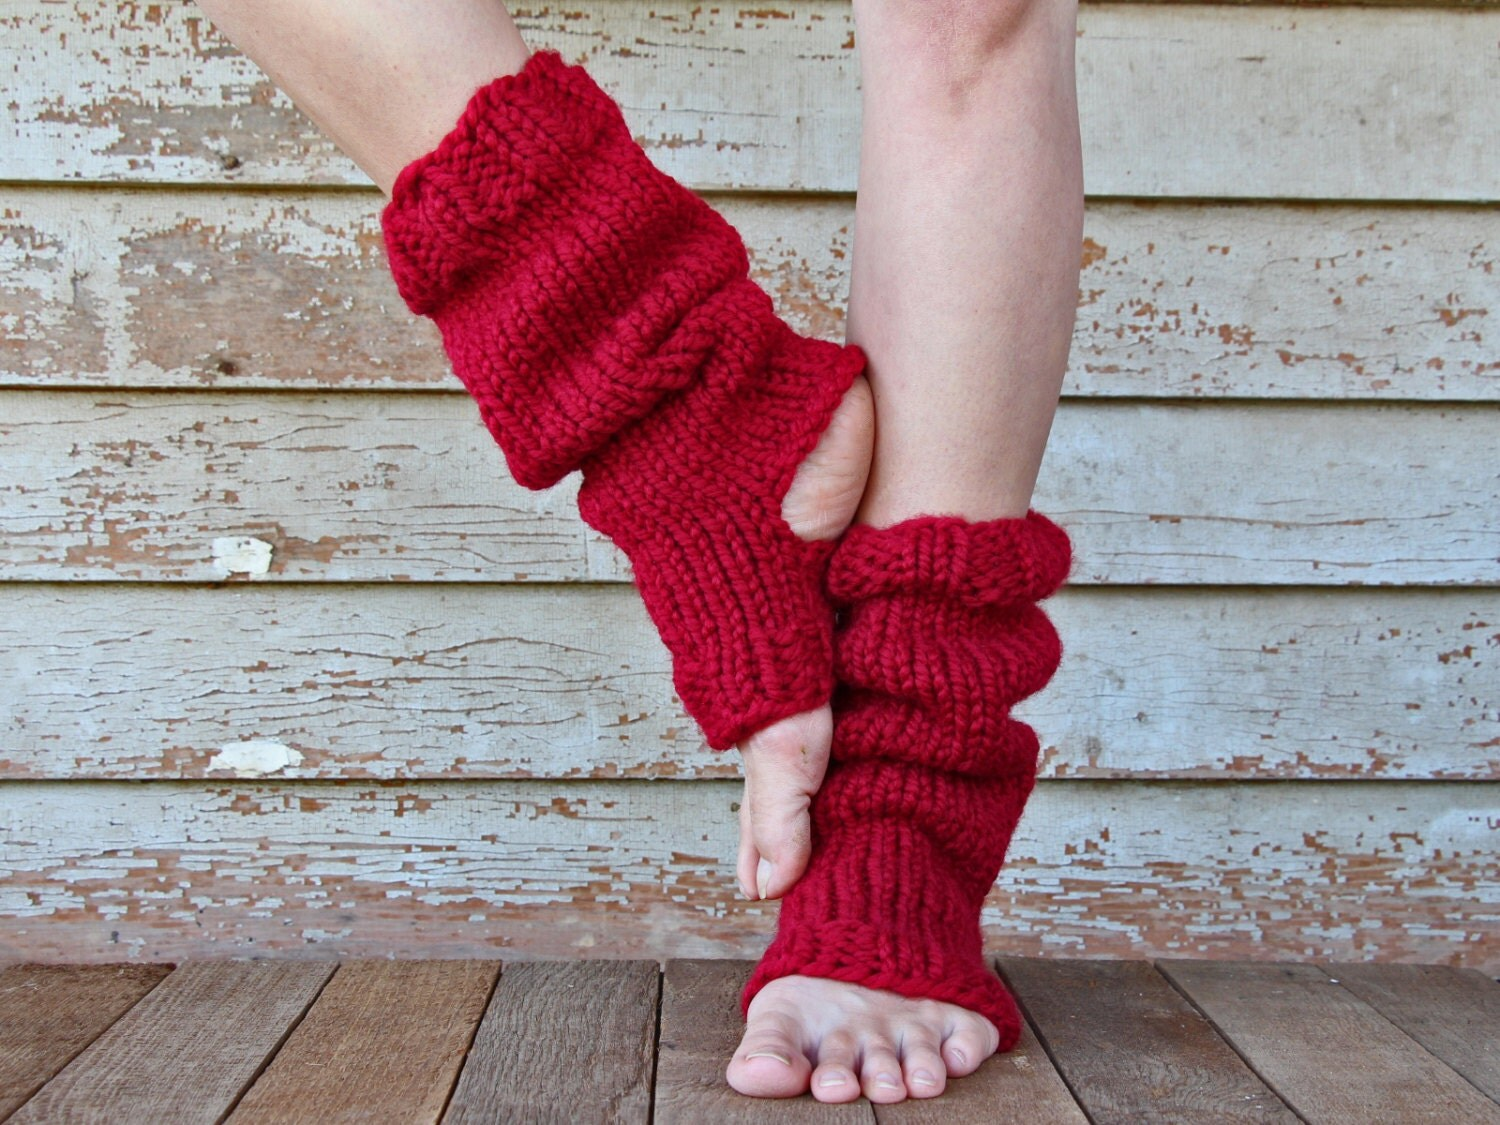 Yoga Leg Warmers Knitting Pattern : Yoga Sock Leg Warmer Knitting Pattern RELAXATION a set of